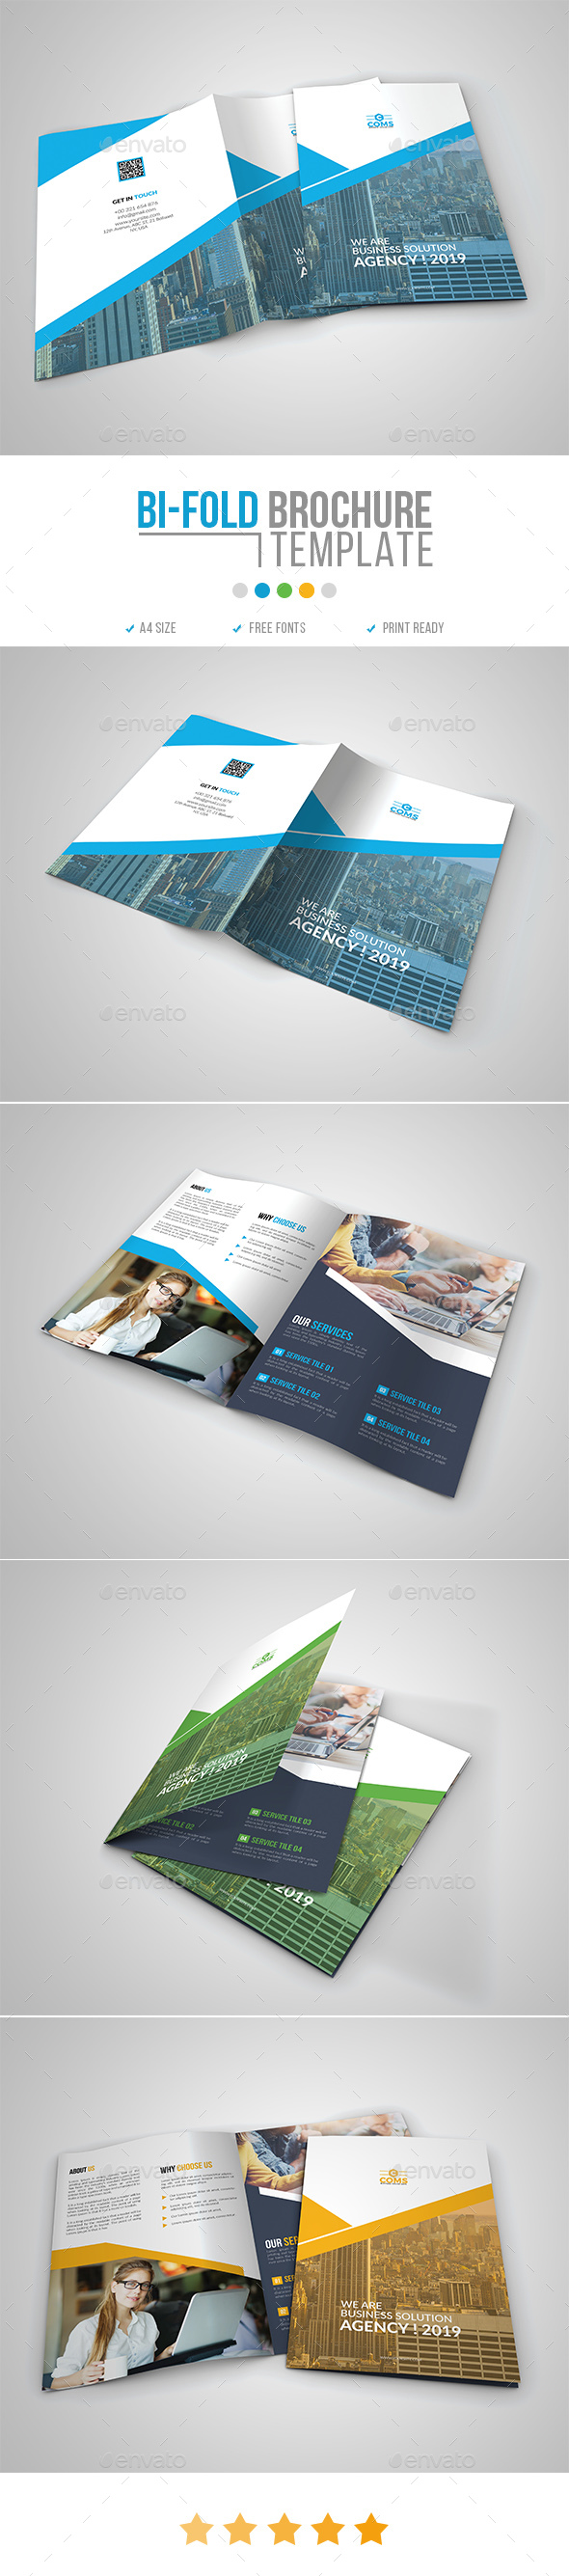 Corporate Bi-Fold Brochure Template 14 - Corporate Brochures